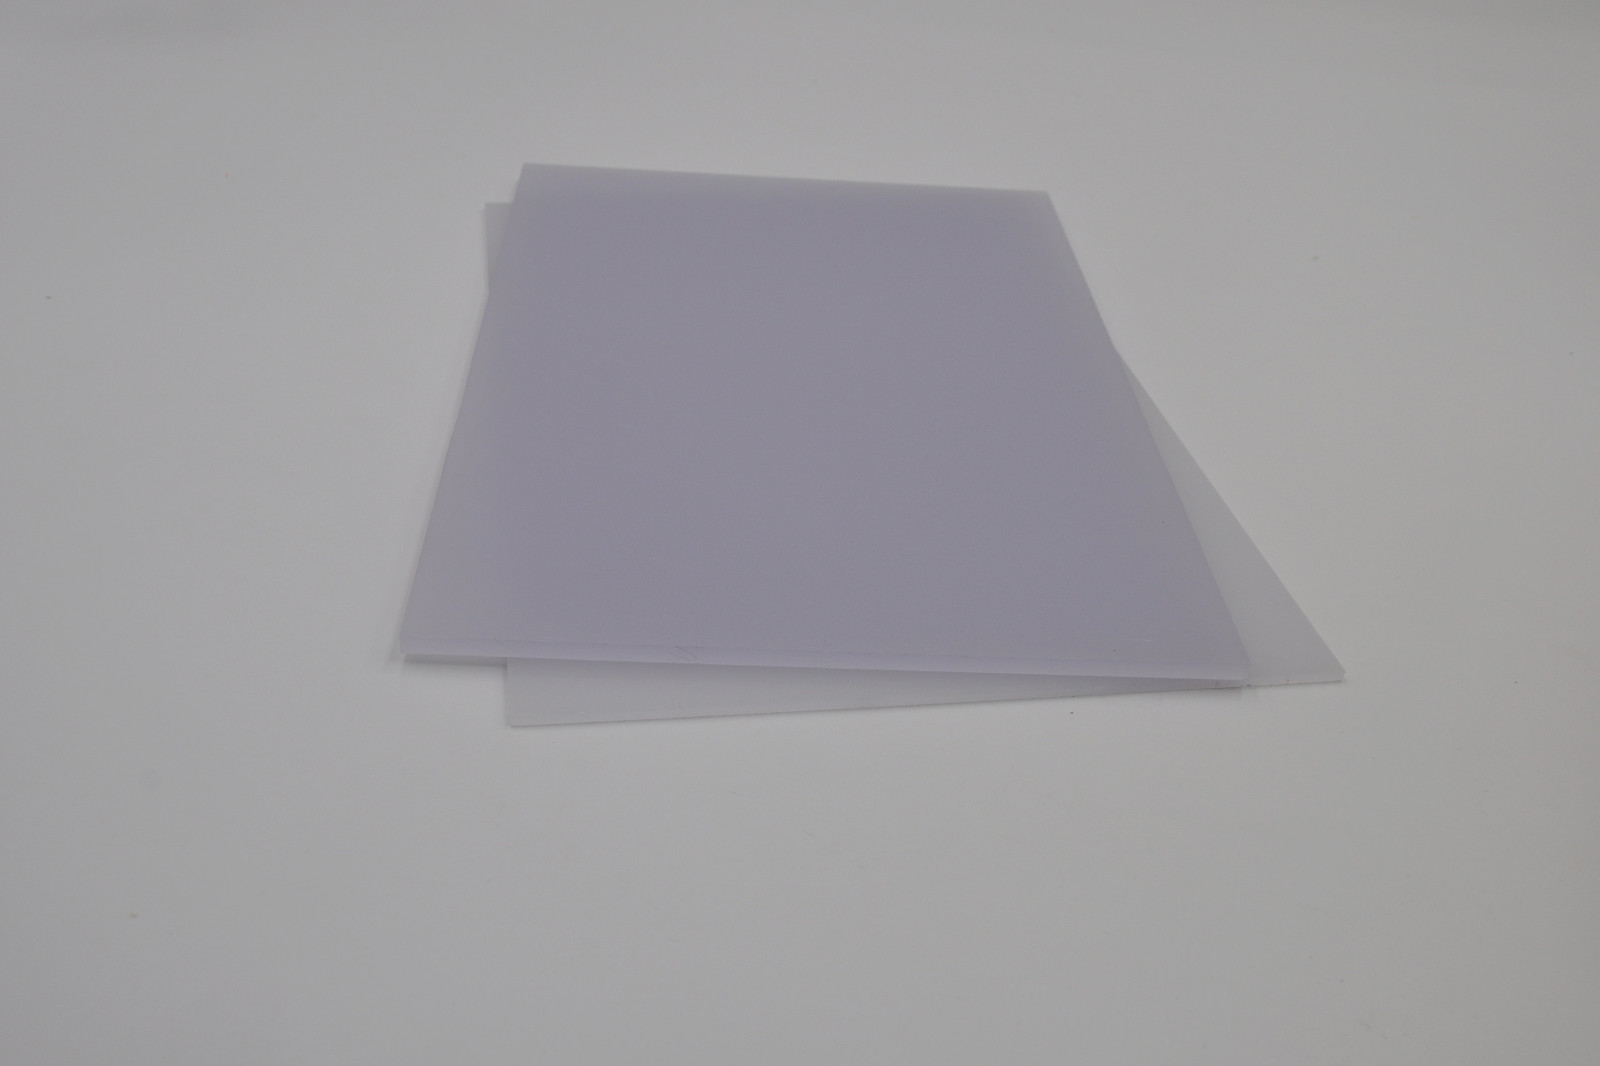 translucent polycarbonate light diffuser 100% new virgin material for Gazebo GWX-5